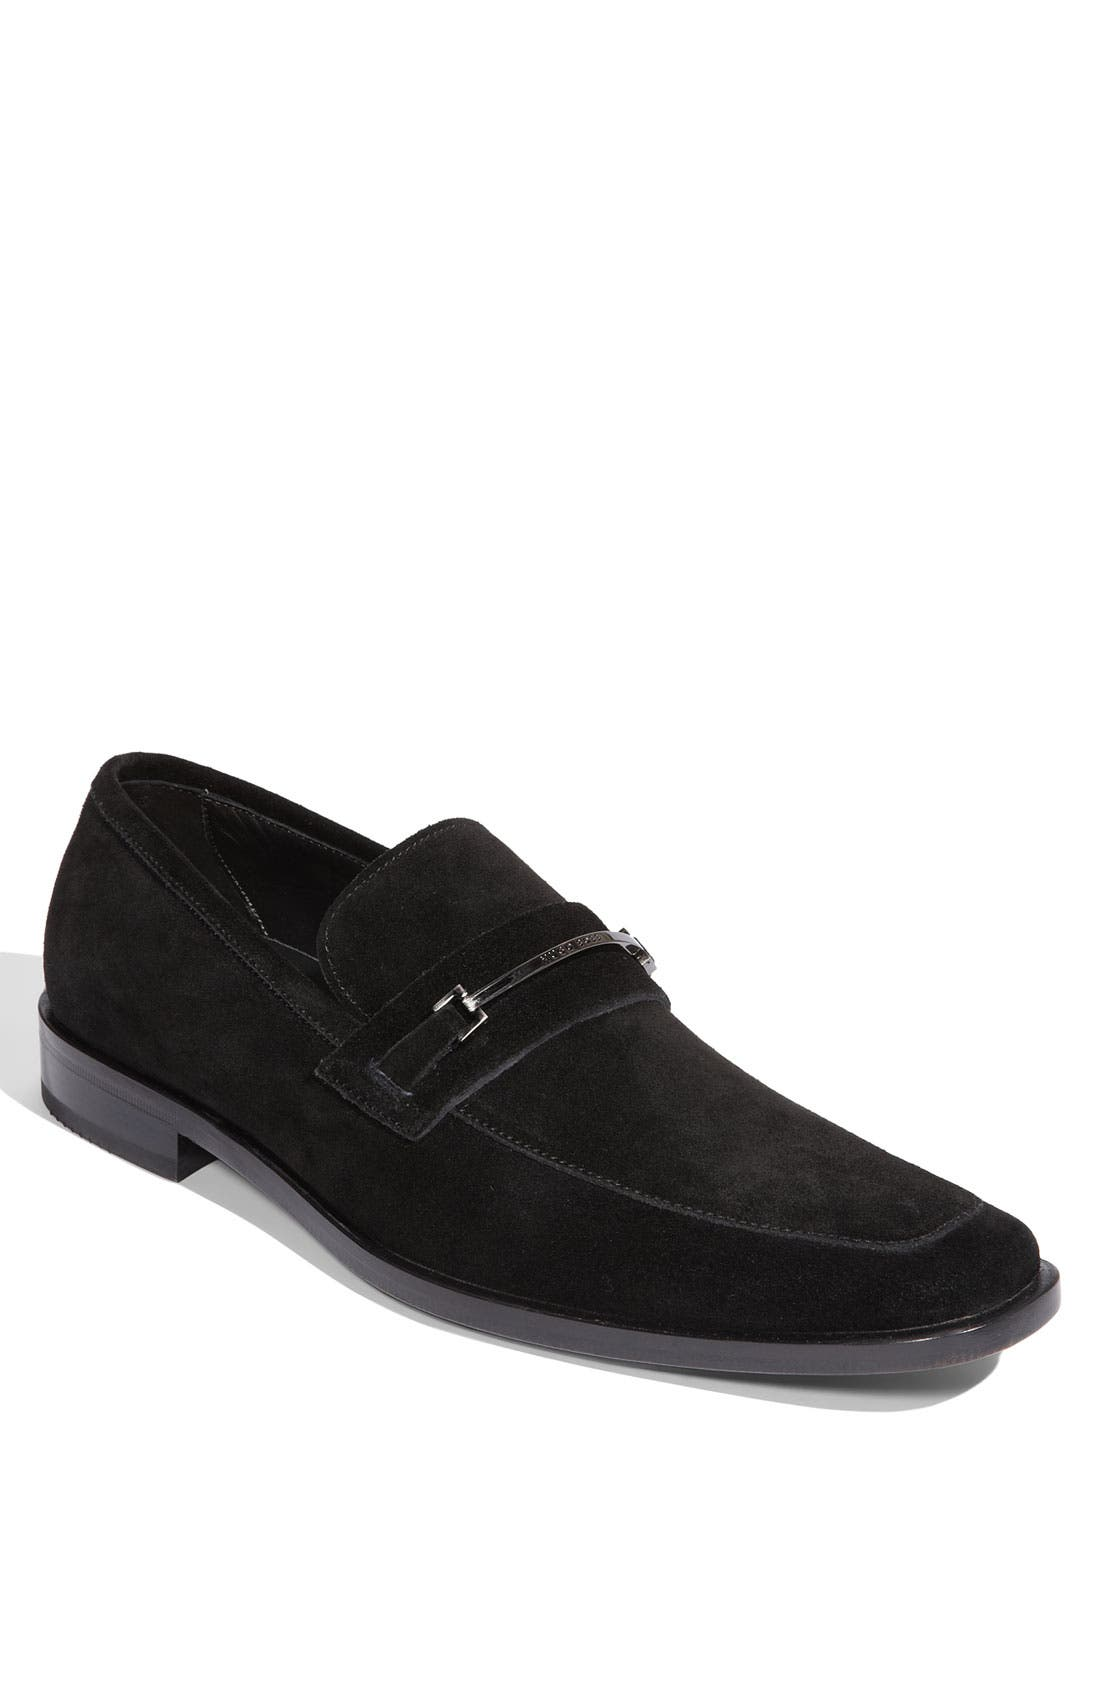 Alternate Image 1 Selected - BOSS Black 'Carl' Loafer (Men)